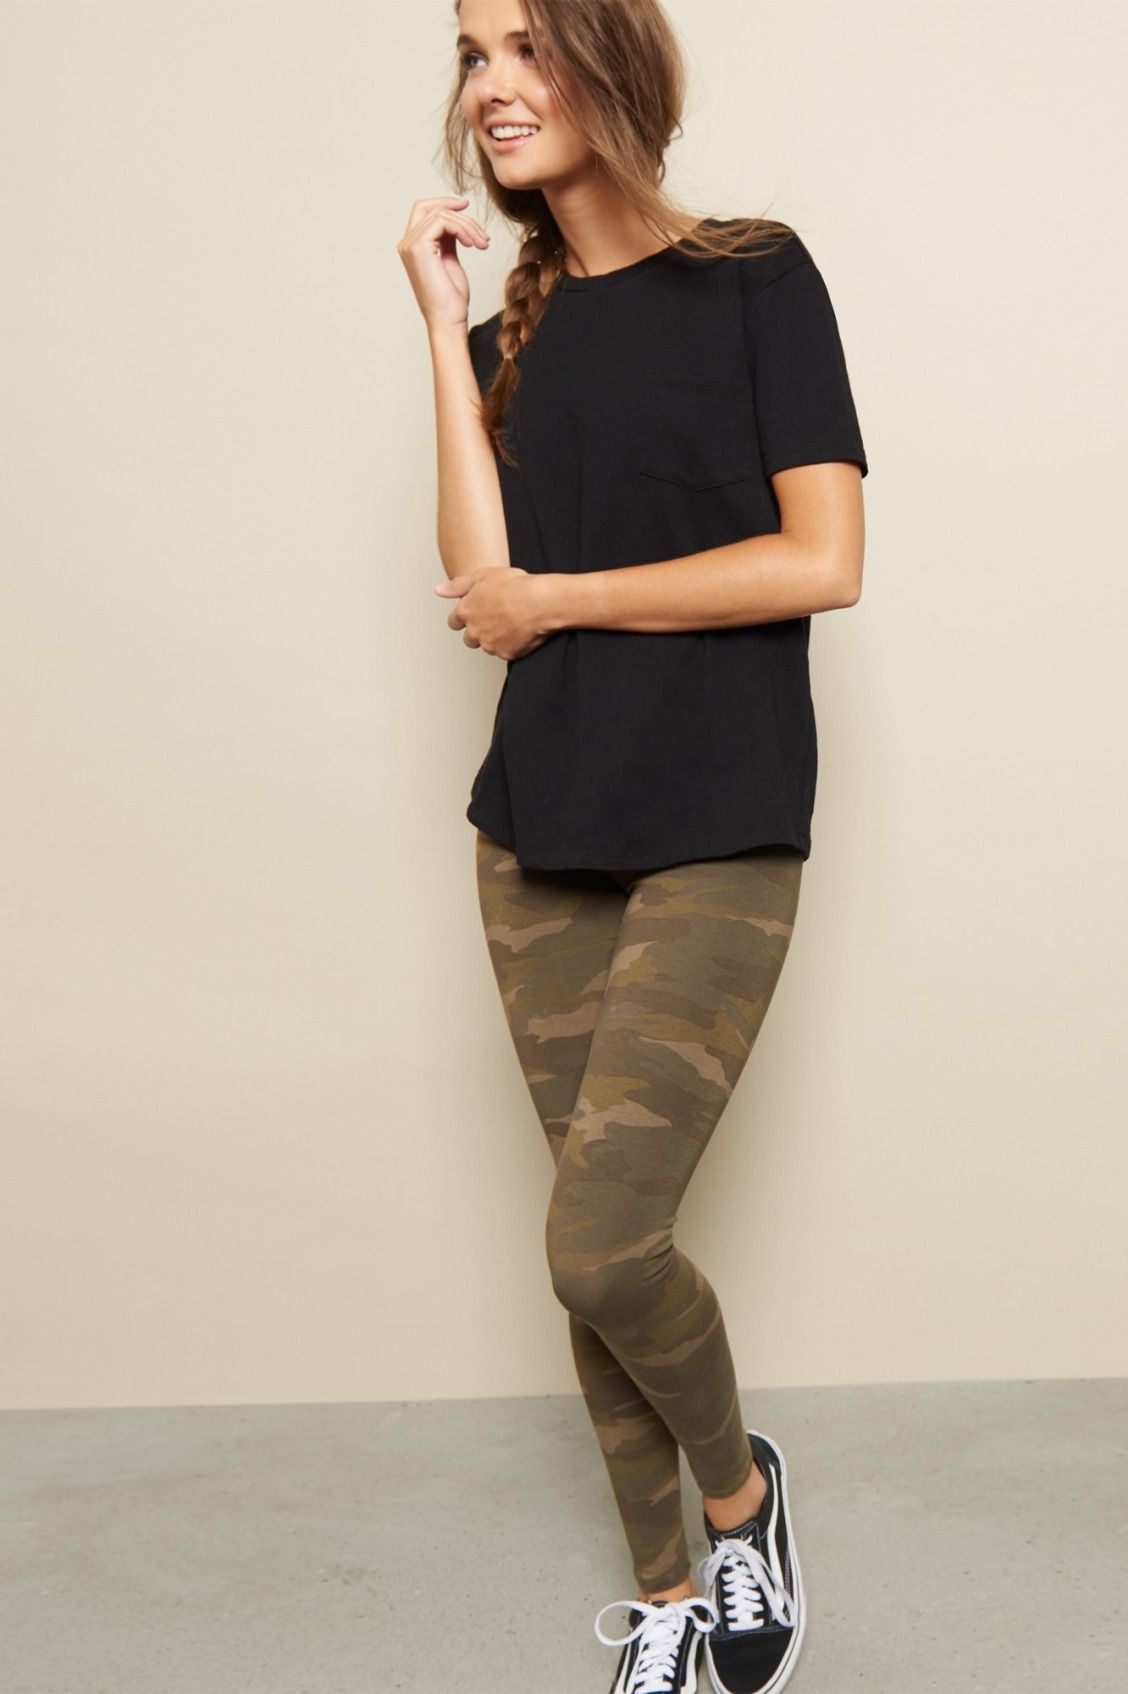 Khaki and black colour outfit, you must try with leggings, tights, jeans